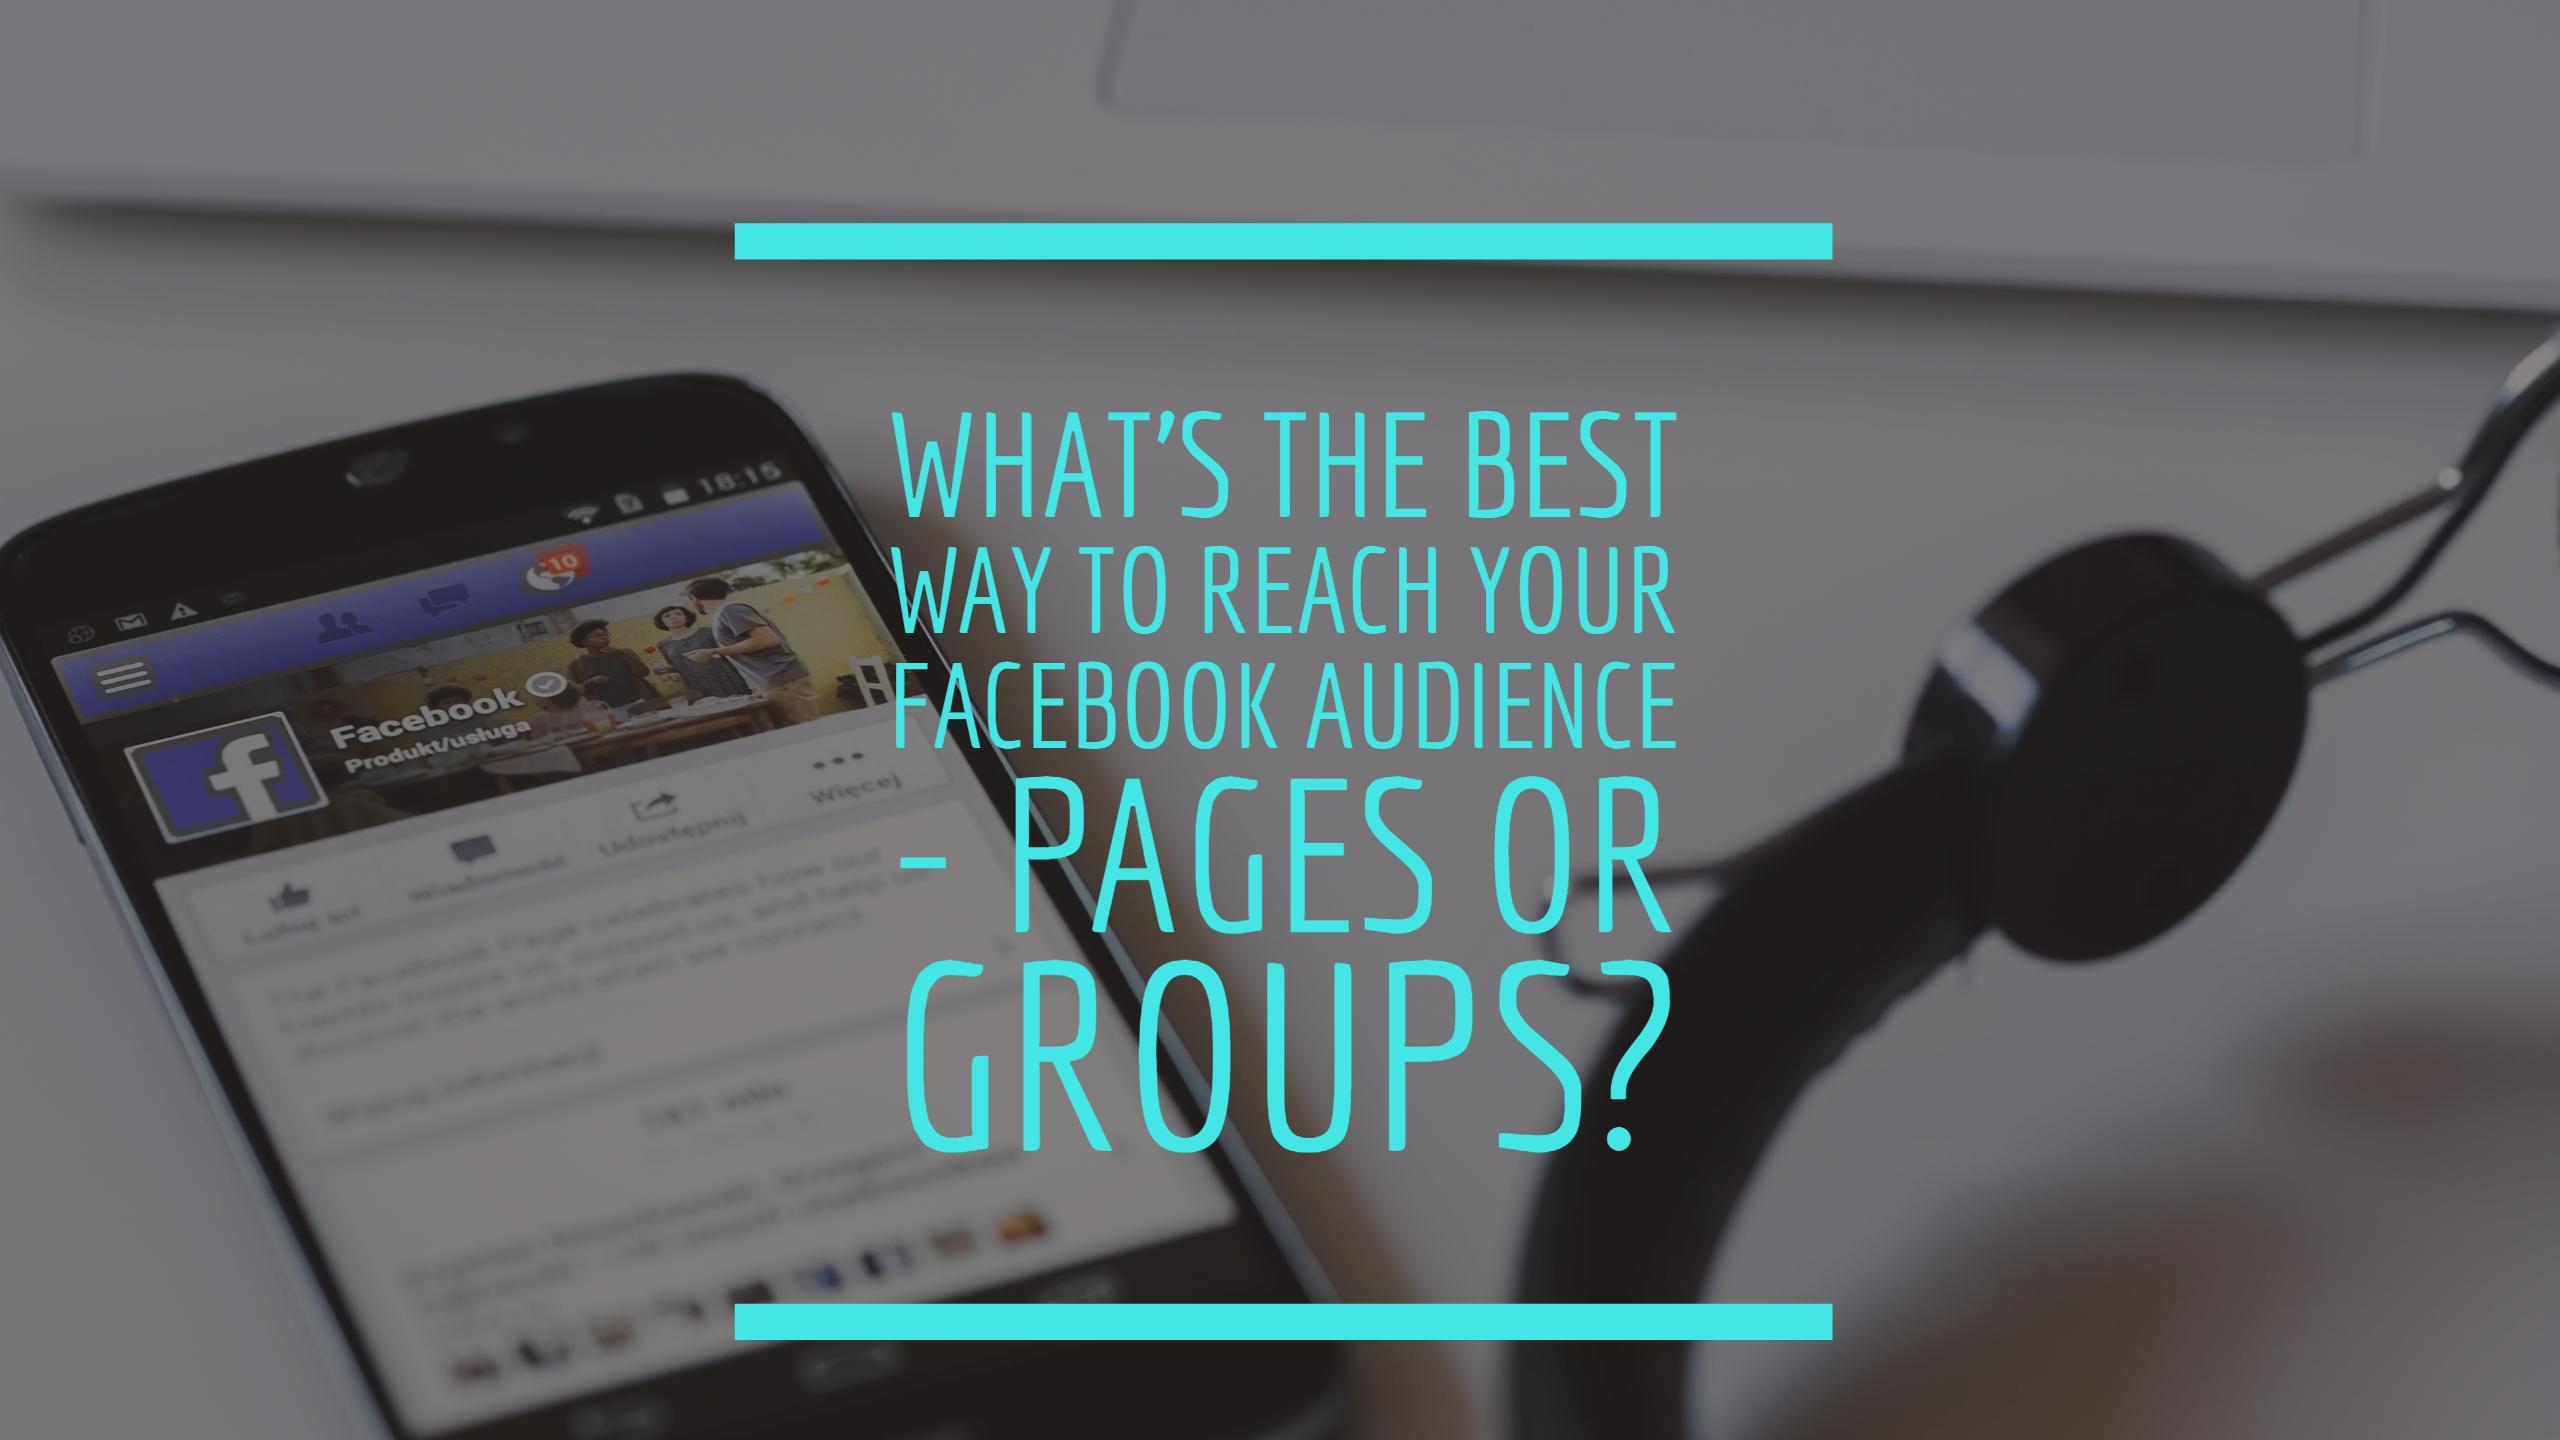 Facebook groups versus fan pages